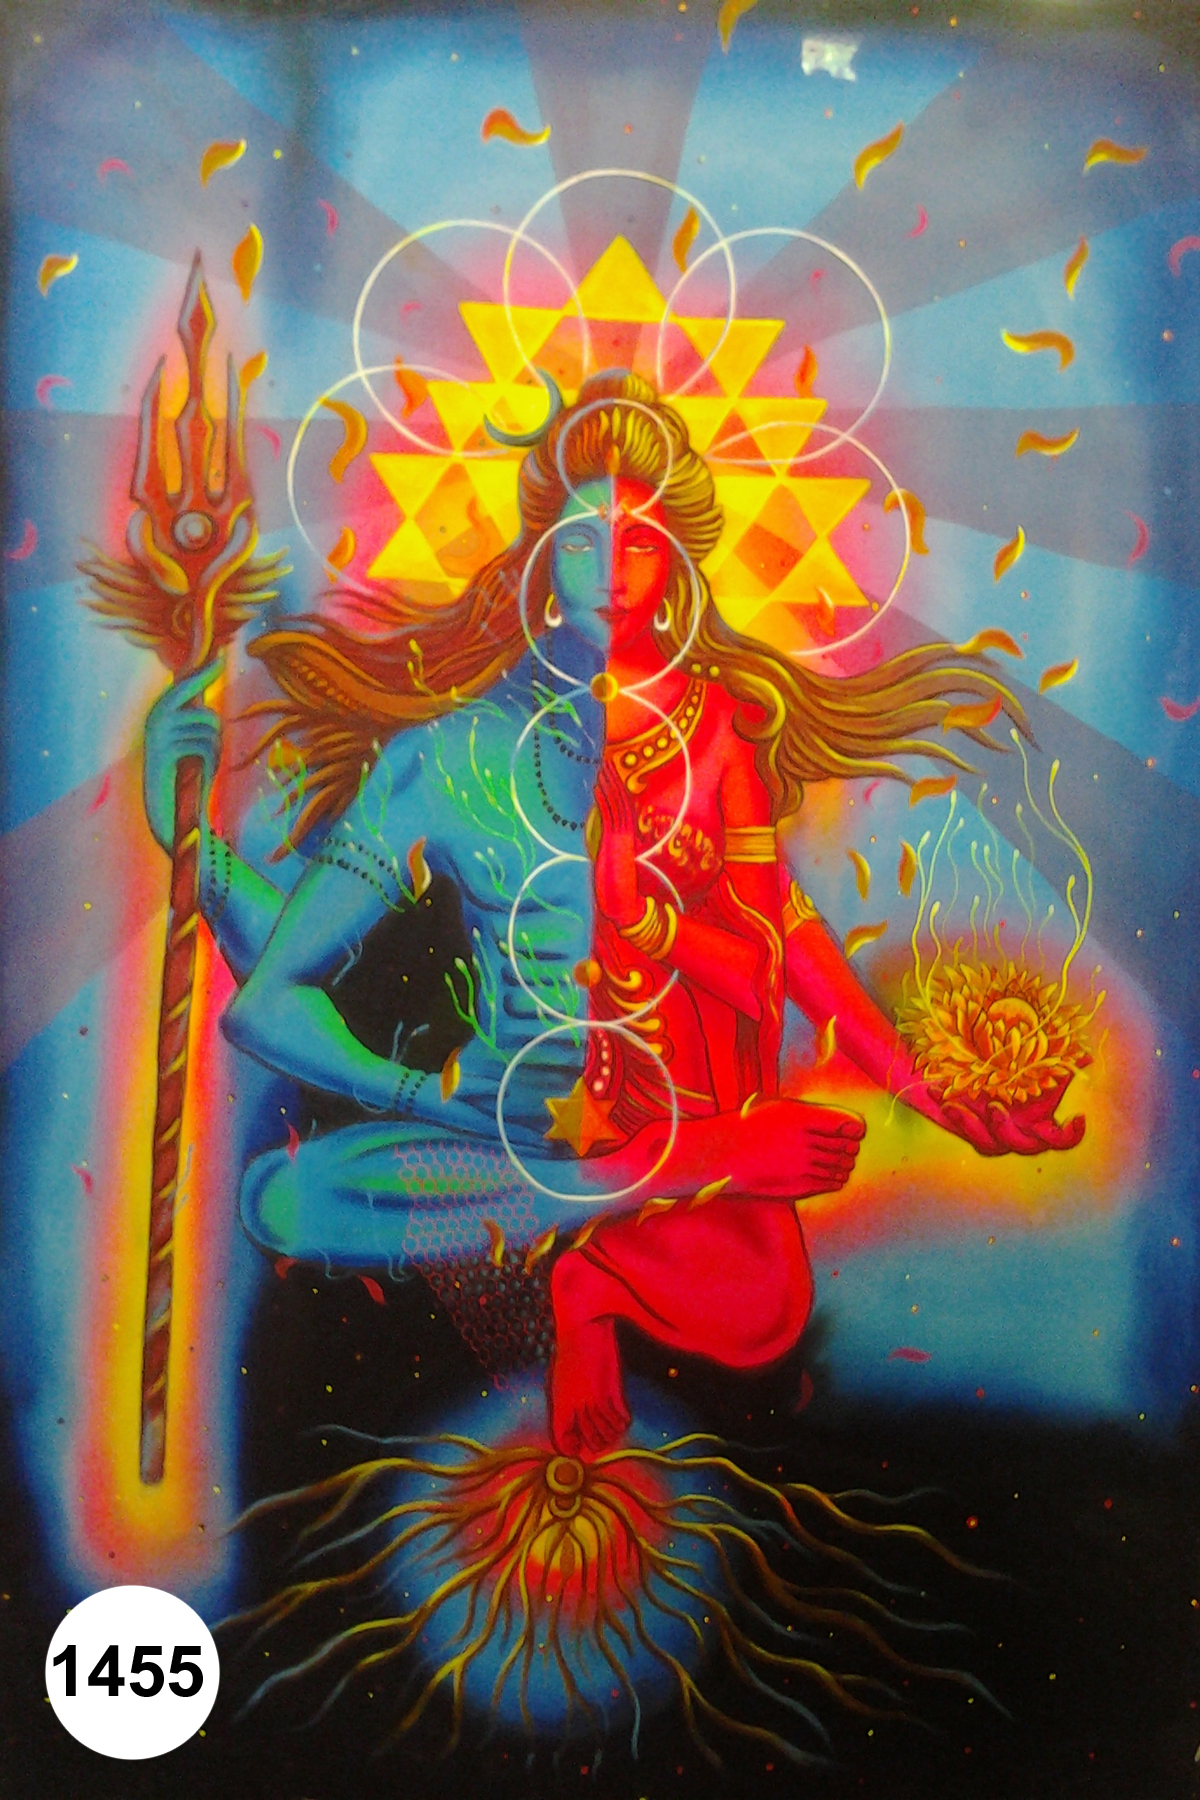 Shiv parvati, Fluorescent painting Glow in dark, UV Glow 1455 ...